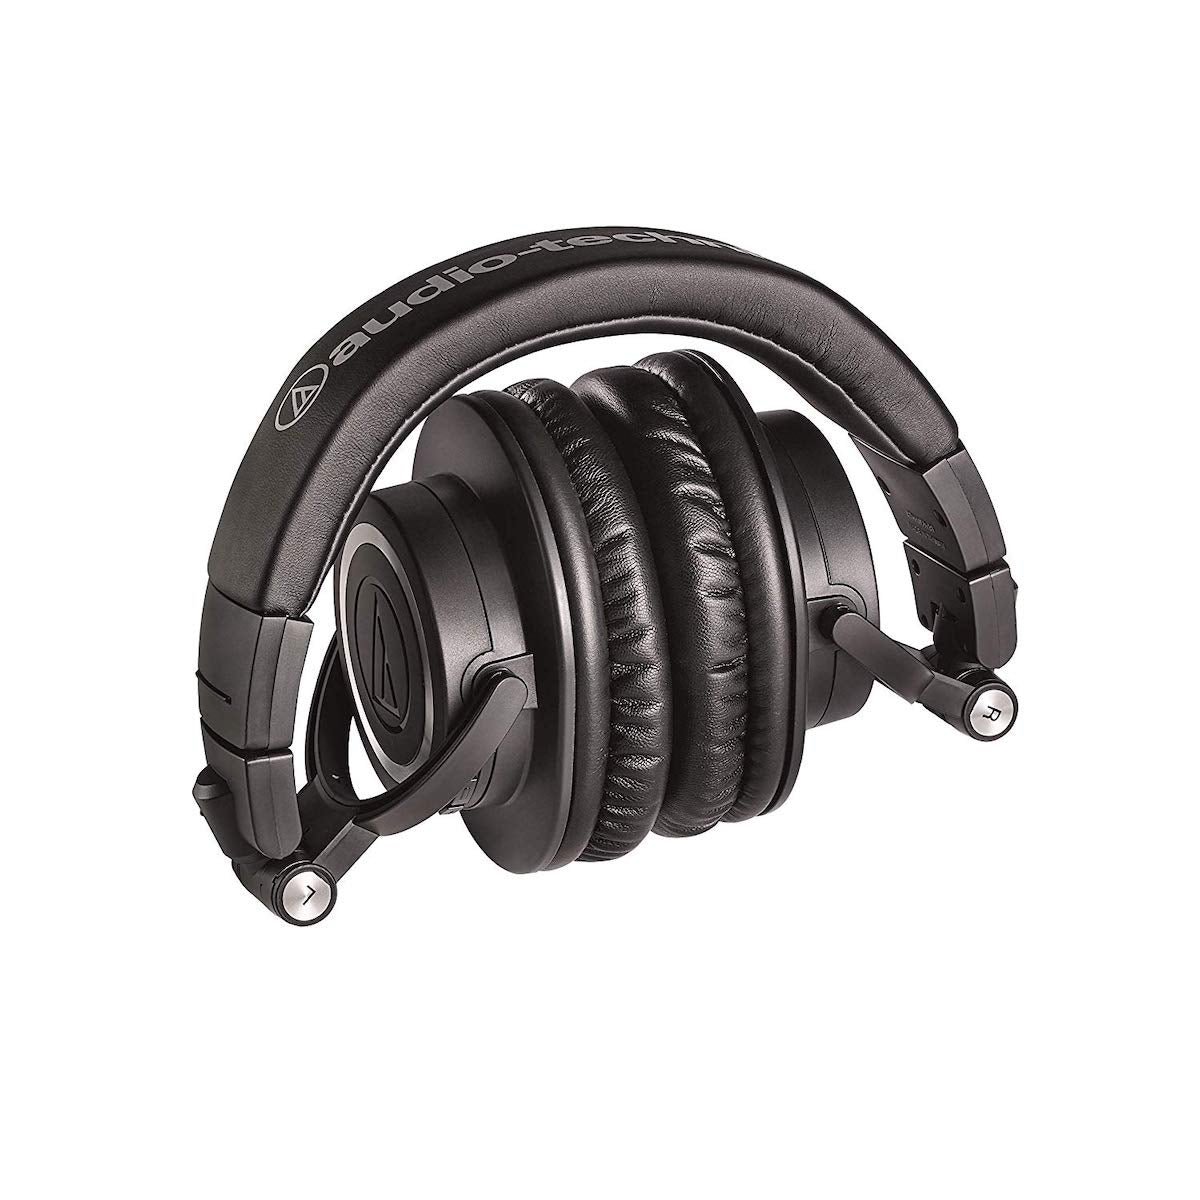 Audio-Technica ATH-M50xBT - Wireless Bluetooth Headphone - AVStore.in